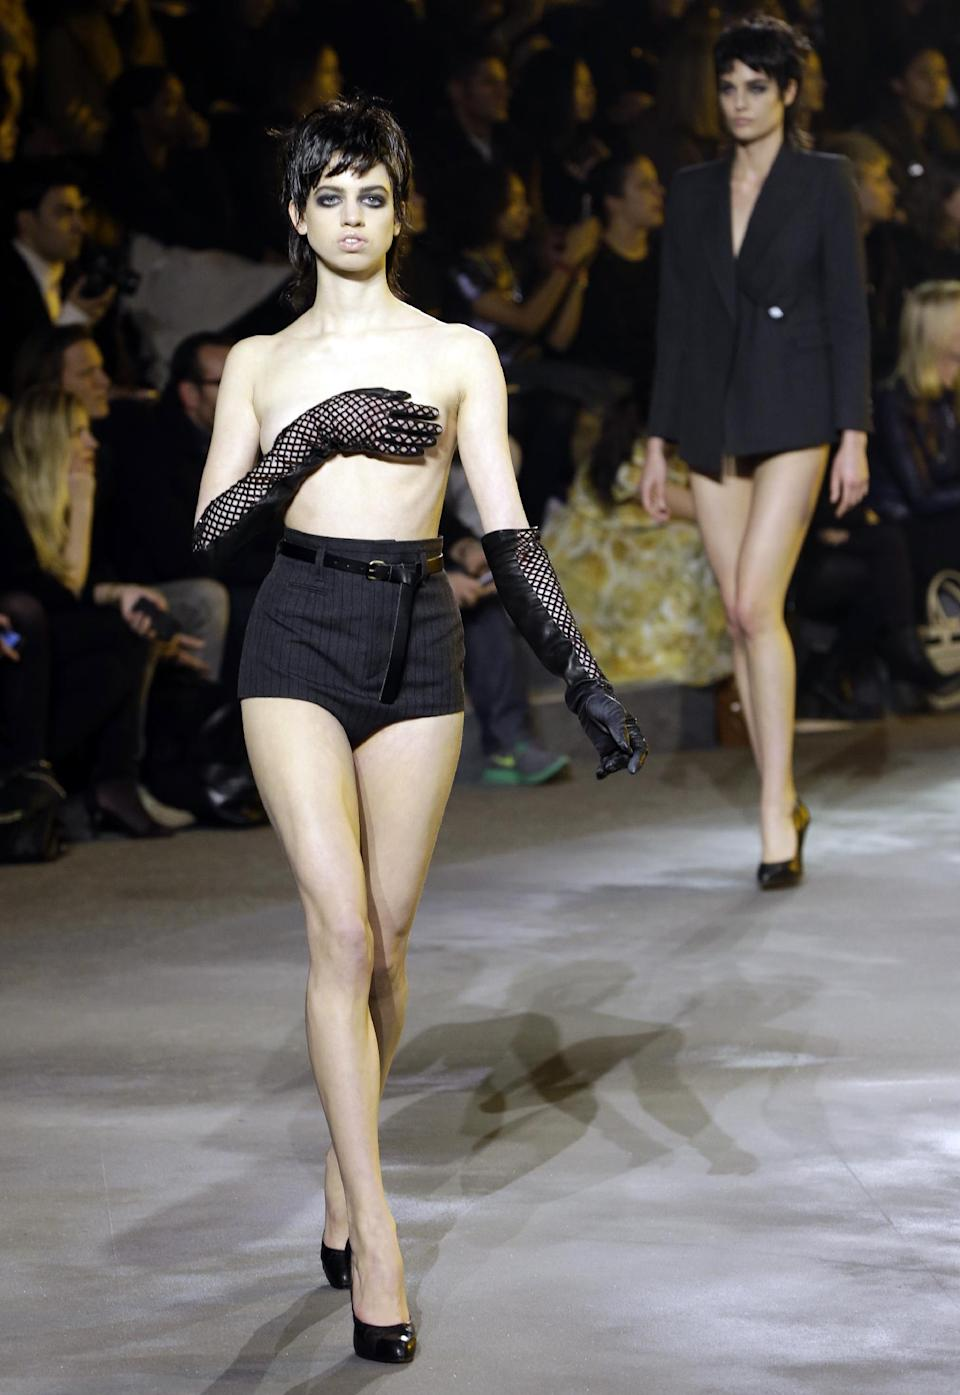 A topless model walks the runway during the Marc Jacobs Fall 2013 fashion show Fashion Week in New York, Thursday, Feb. 14, 2013.  (AP Photo/Kathy Willens)